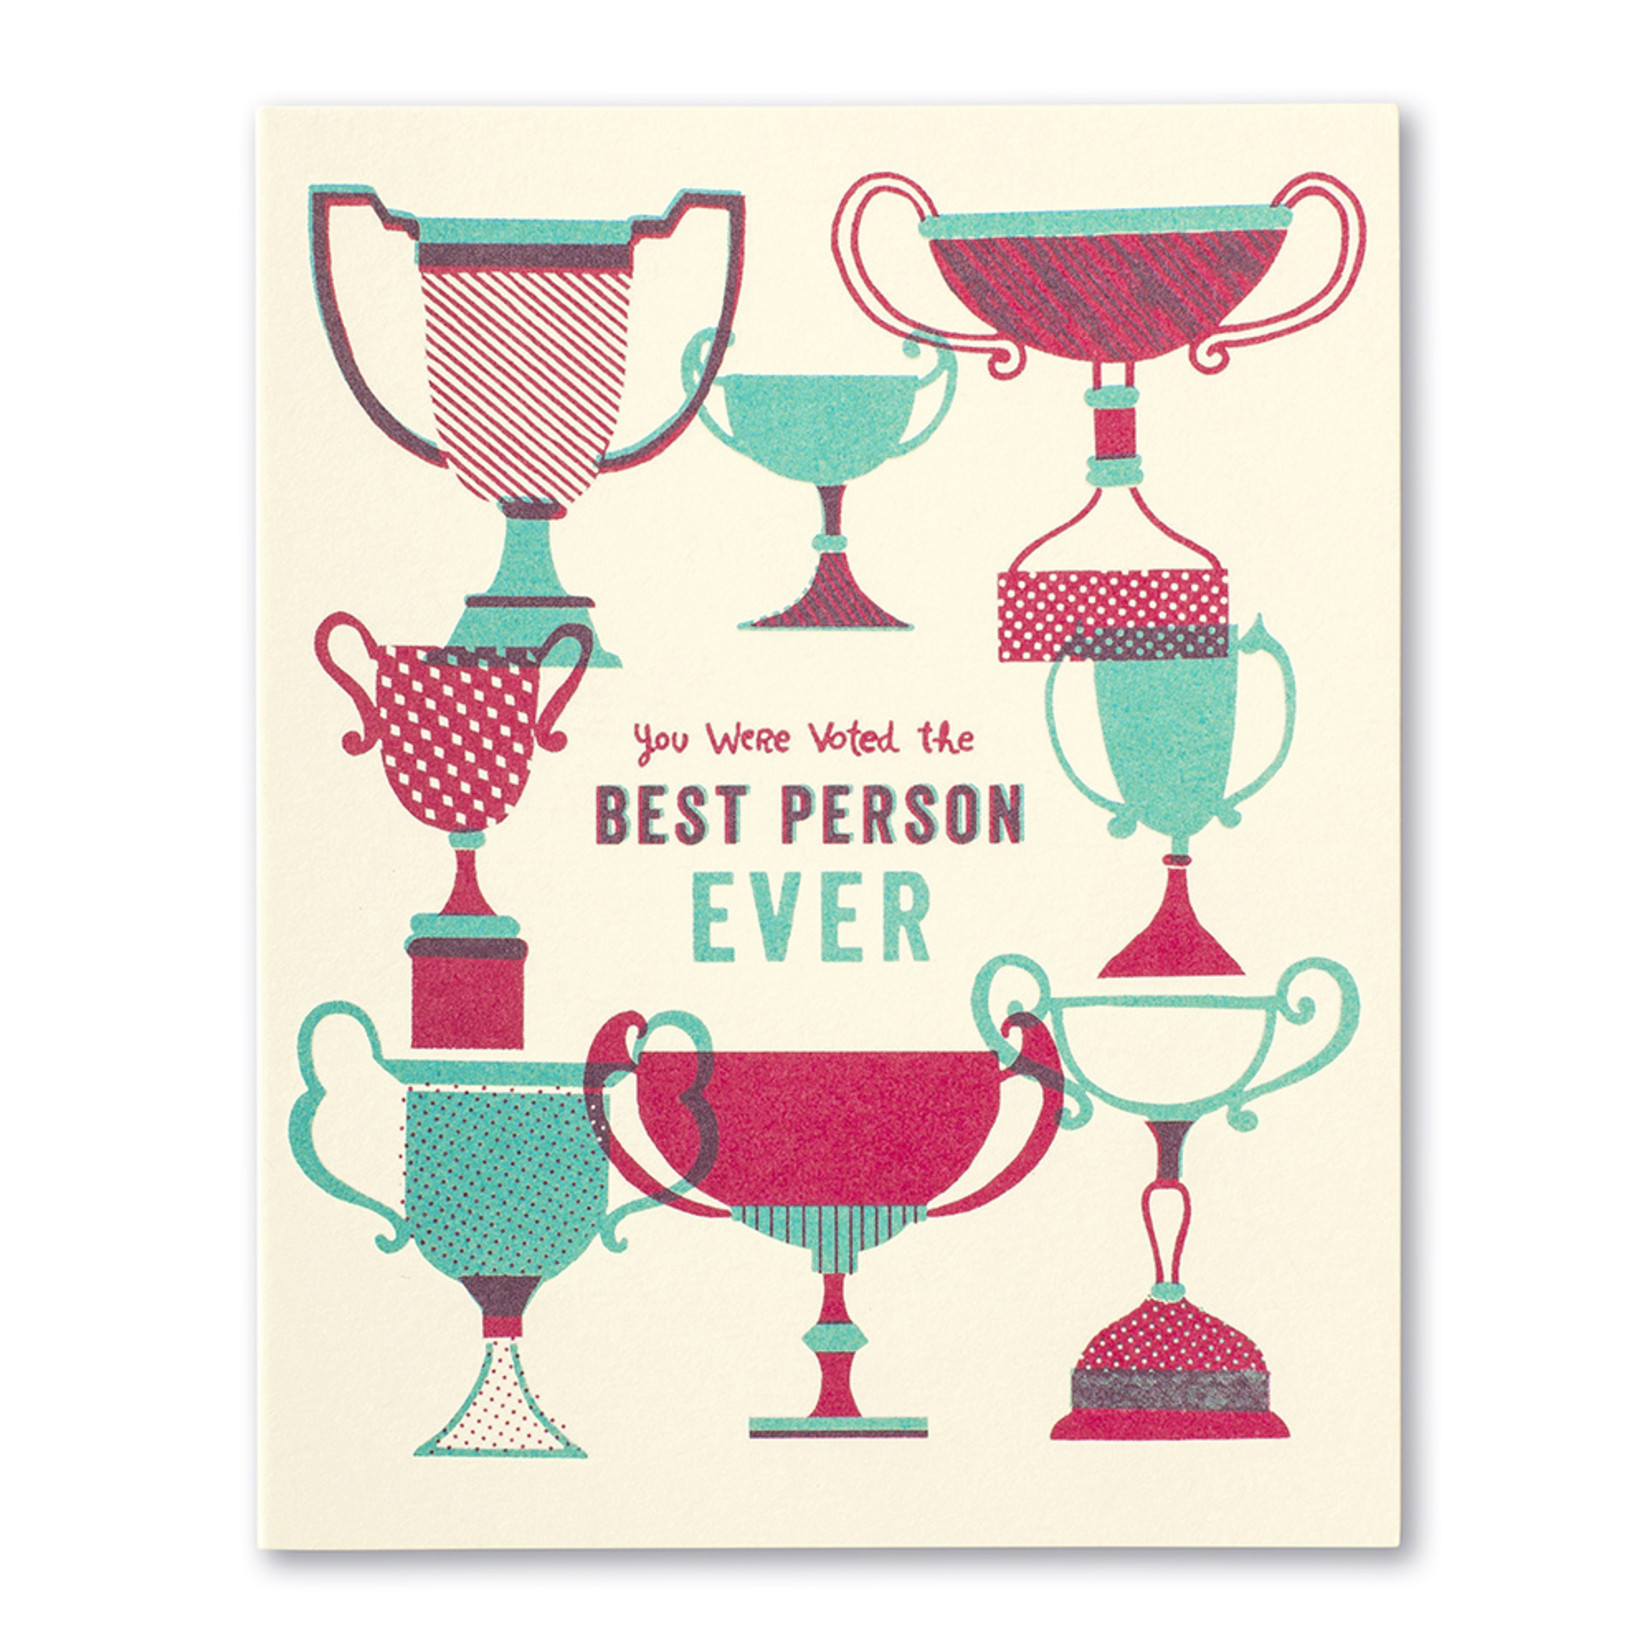 Love Muchly You were voted the best person ever.